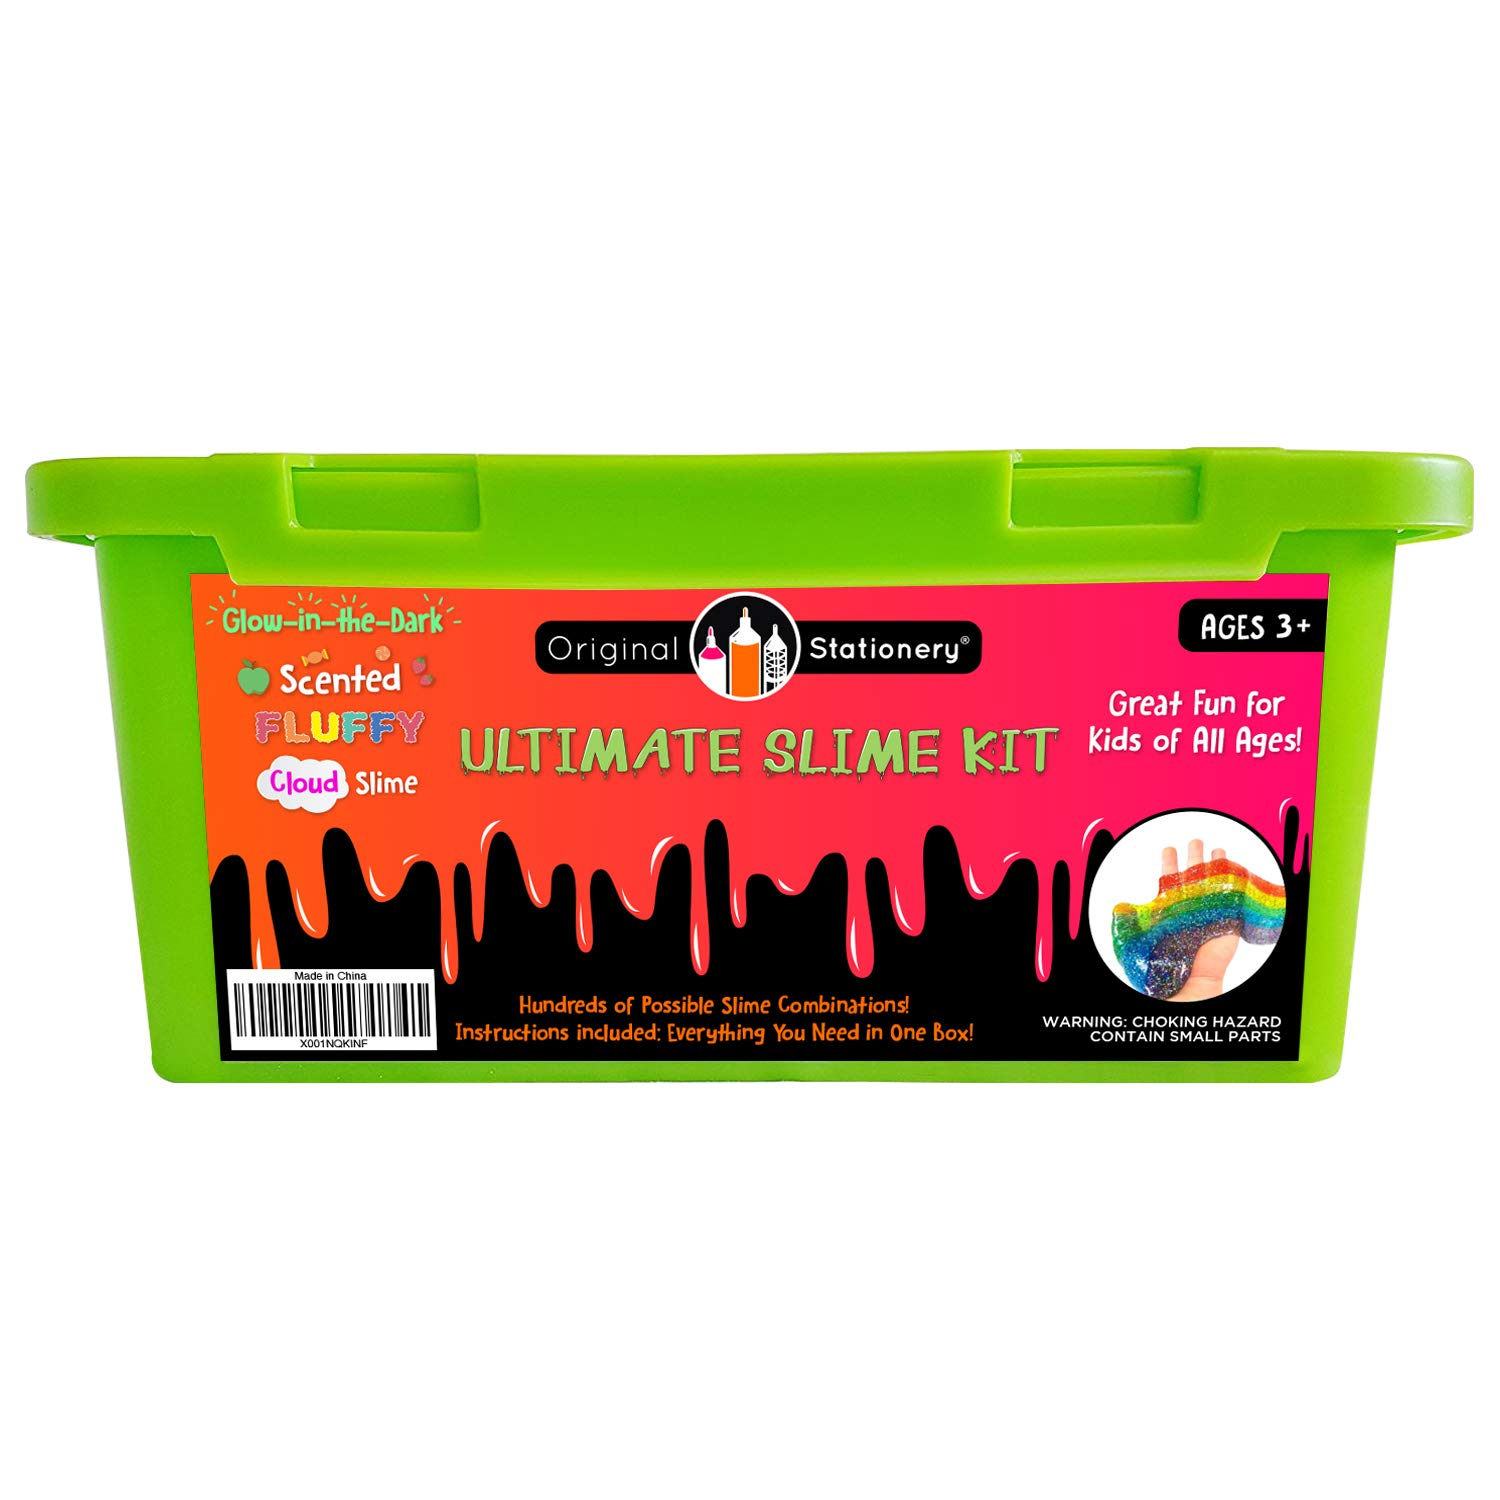 Ultimate Slime Kit Supplies Stuff for Girls and Boys Making Slime [Everything in ONE Box] Kids can Make Unicorn, Glitter, Cloud, Rainbow Slimes and More. Includes Glue and Full Instructions.